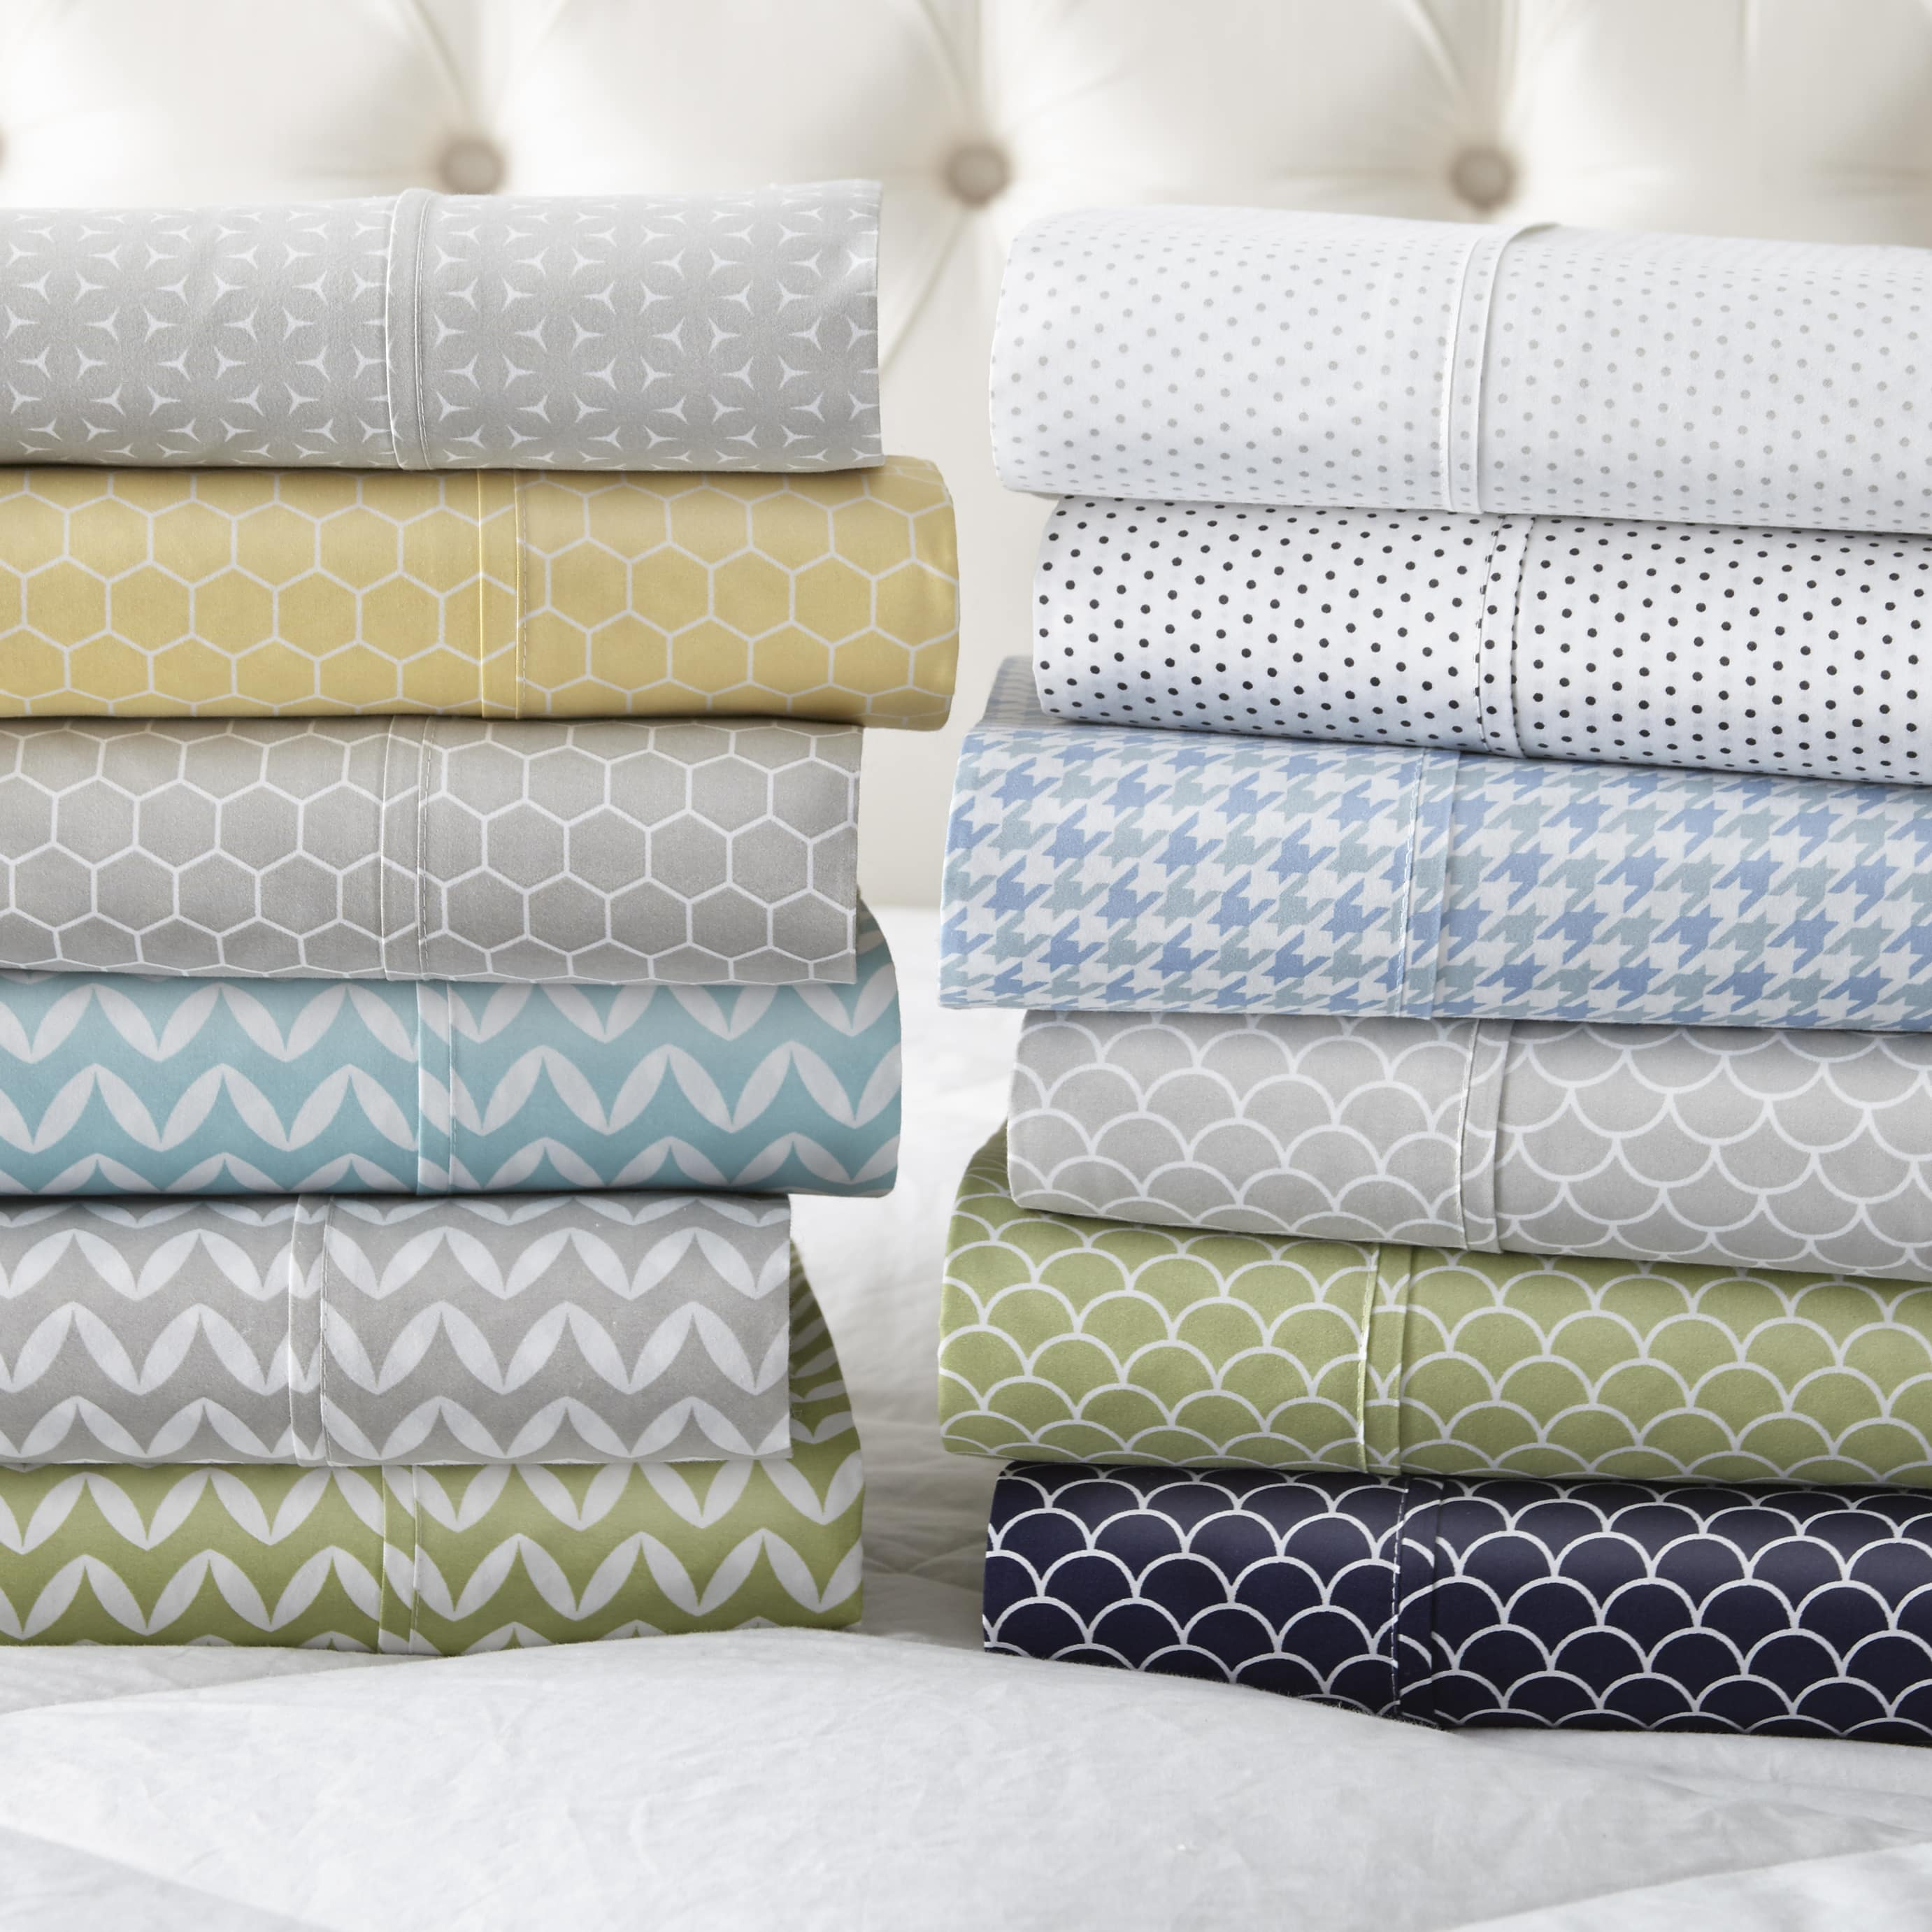 Linens & Hutch Patterned 4 Piece Sheet Sets: Starting at $20.66 + FS